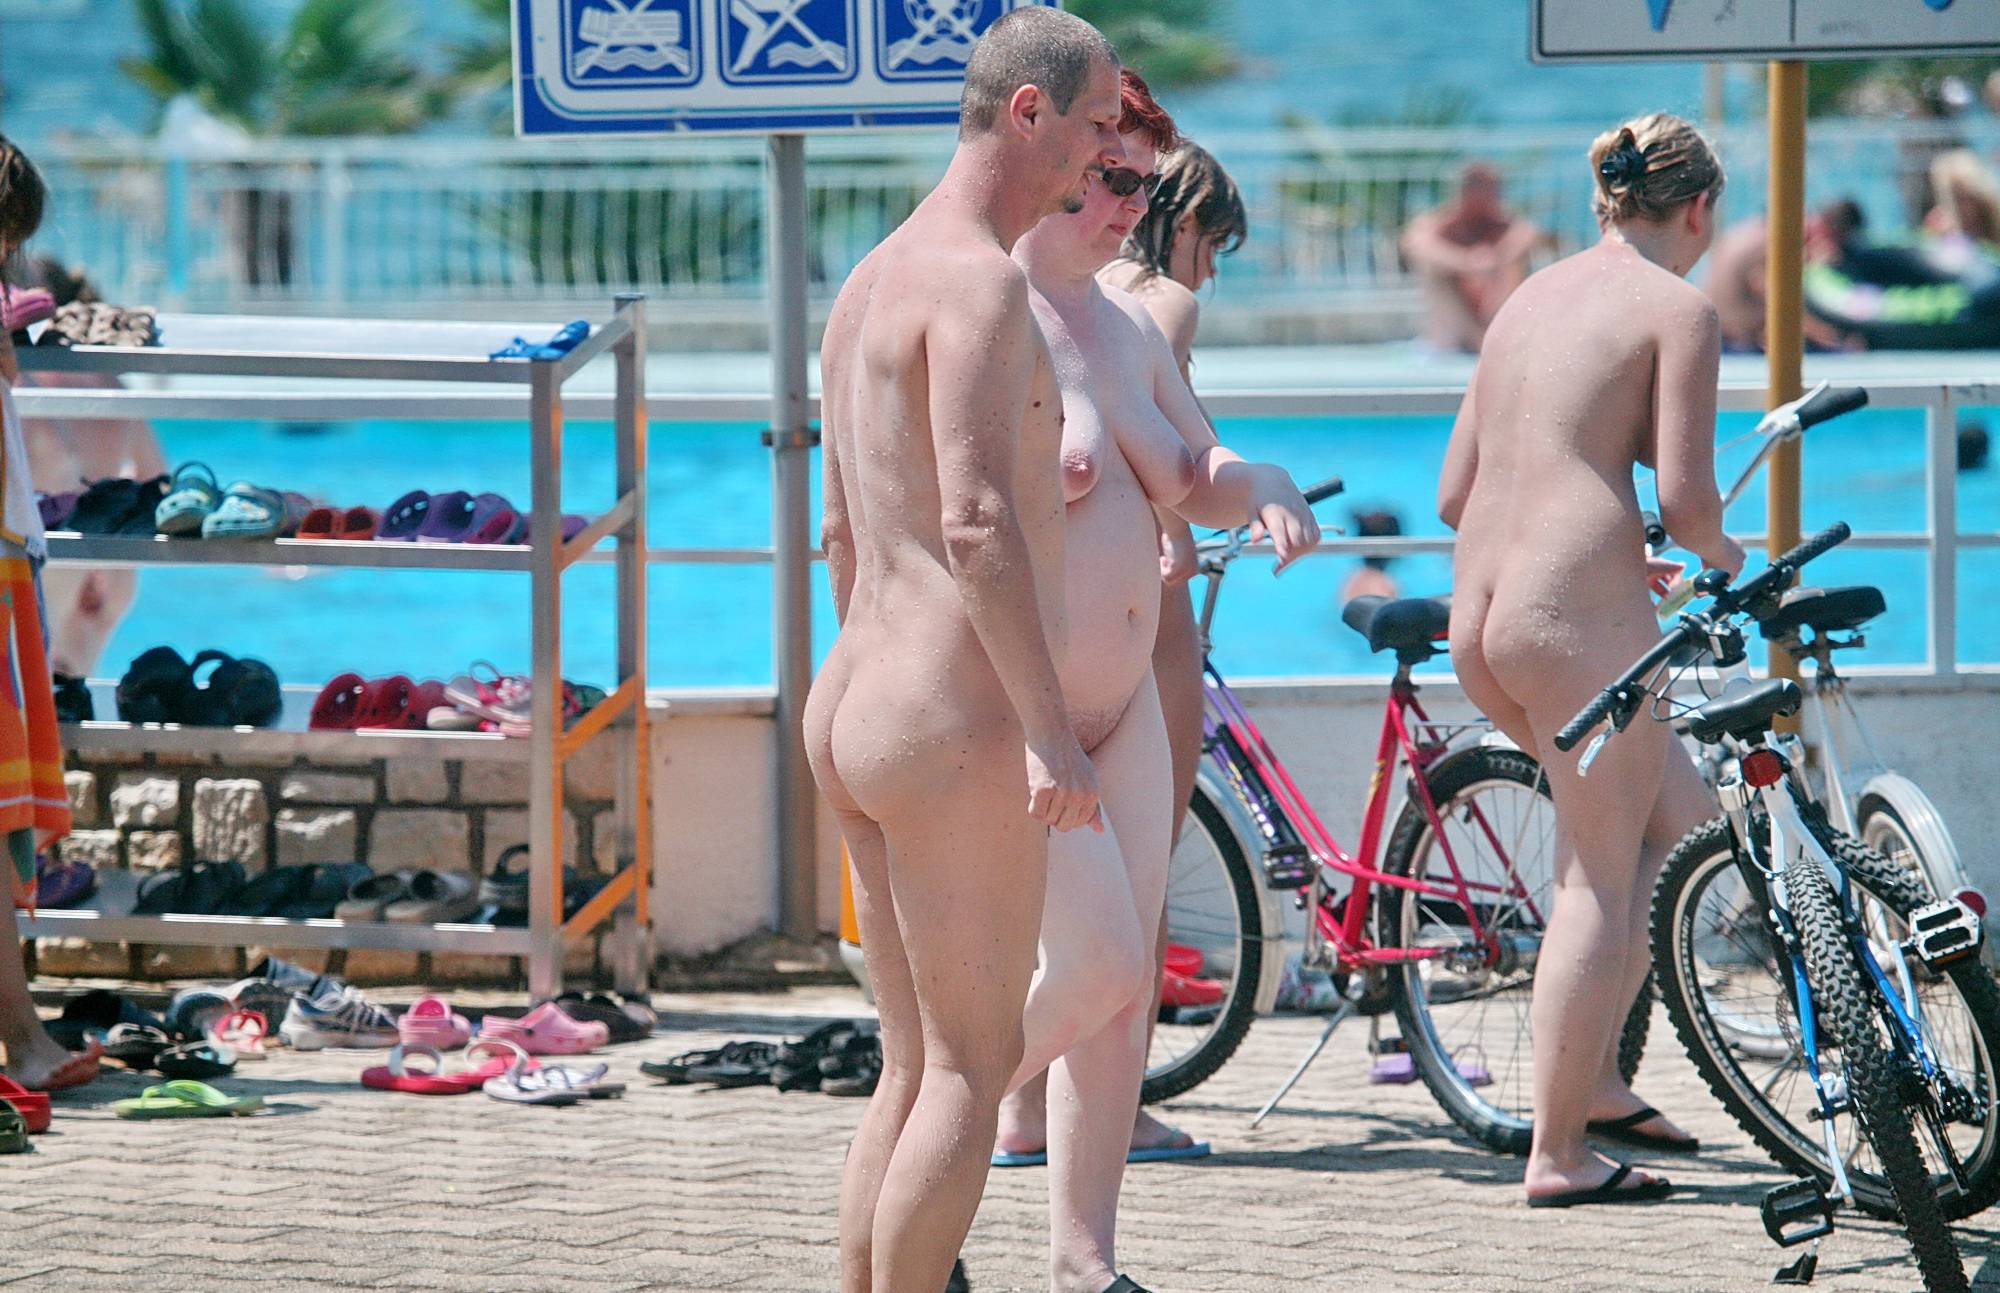 Nudist Photos Out and About From the Pool - 2